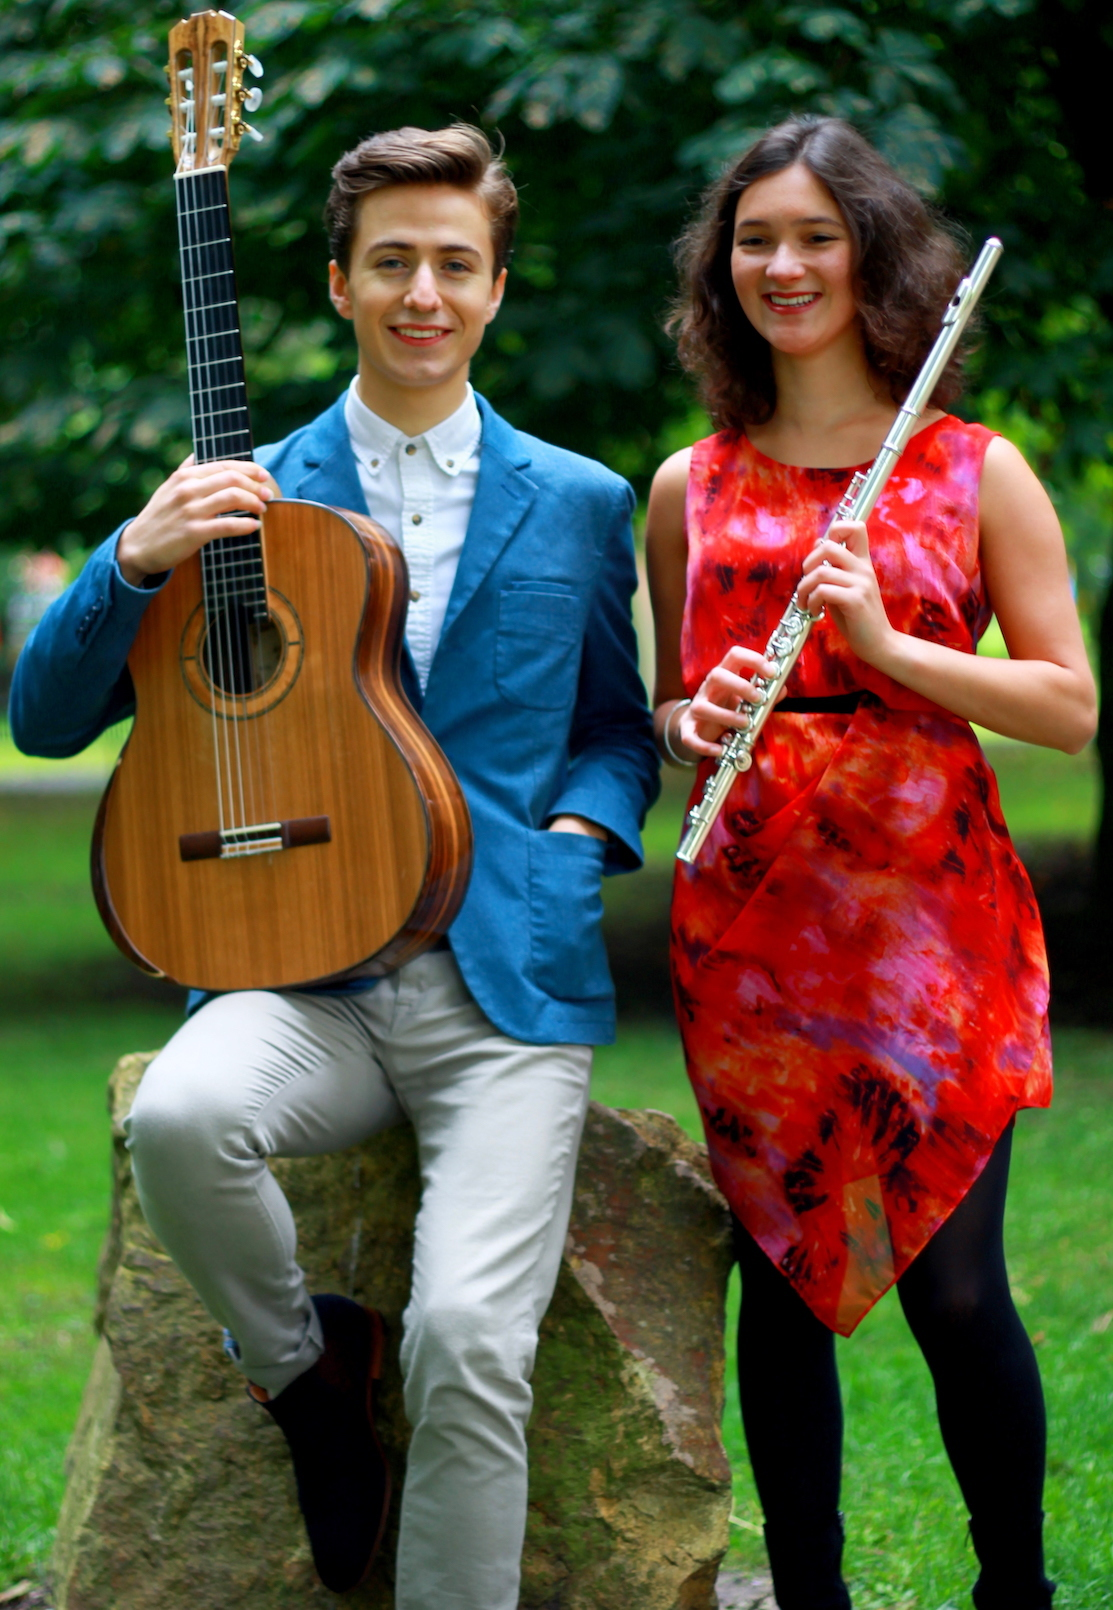 Meraki Duo will close the season with their concert on October 22